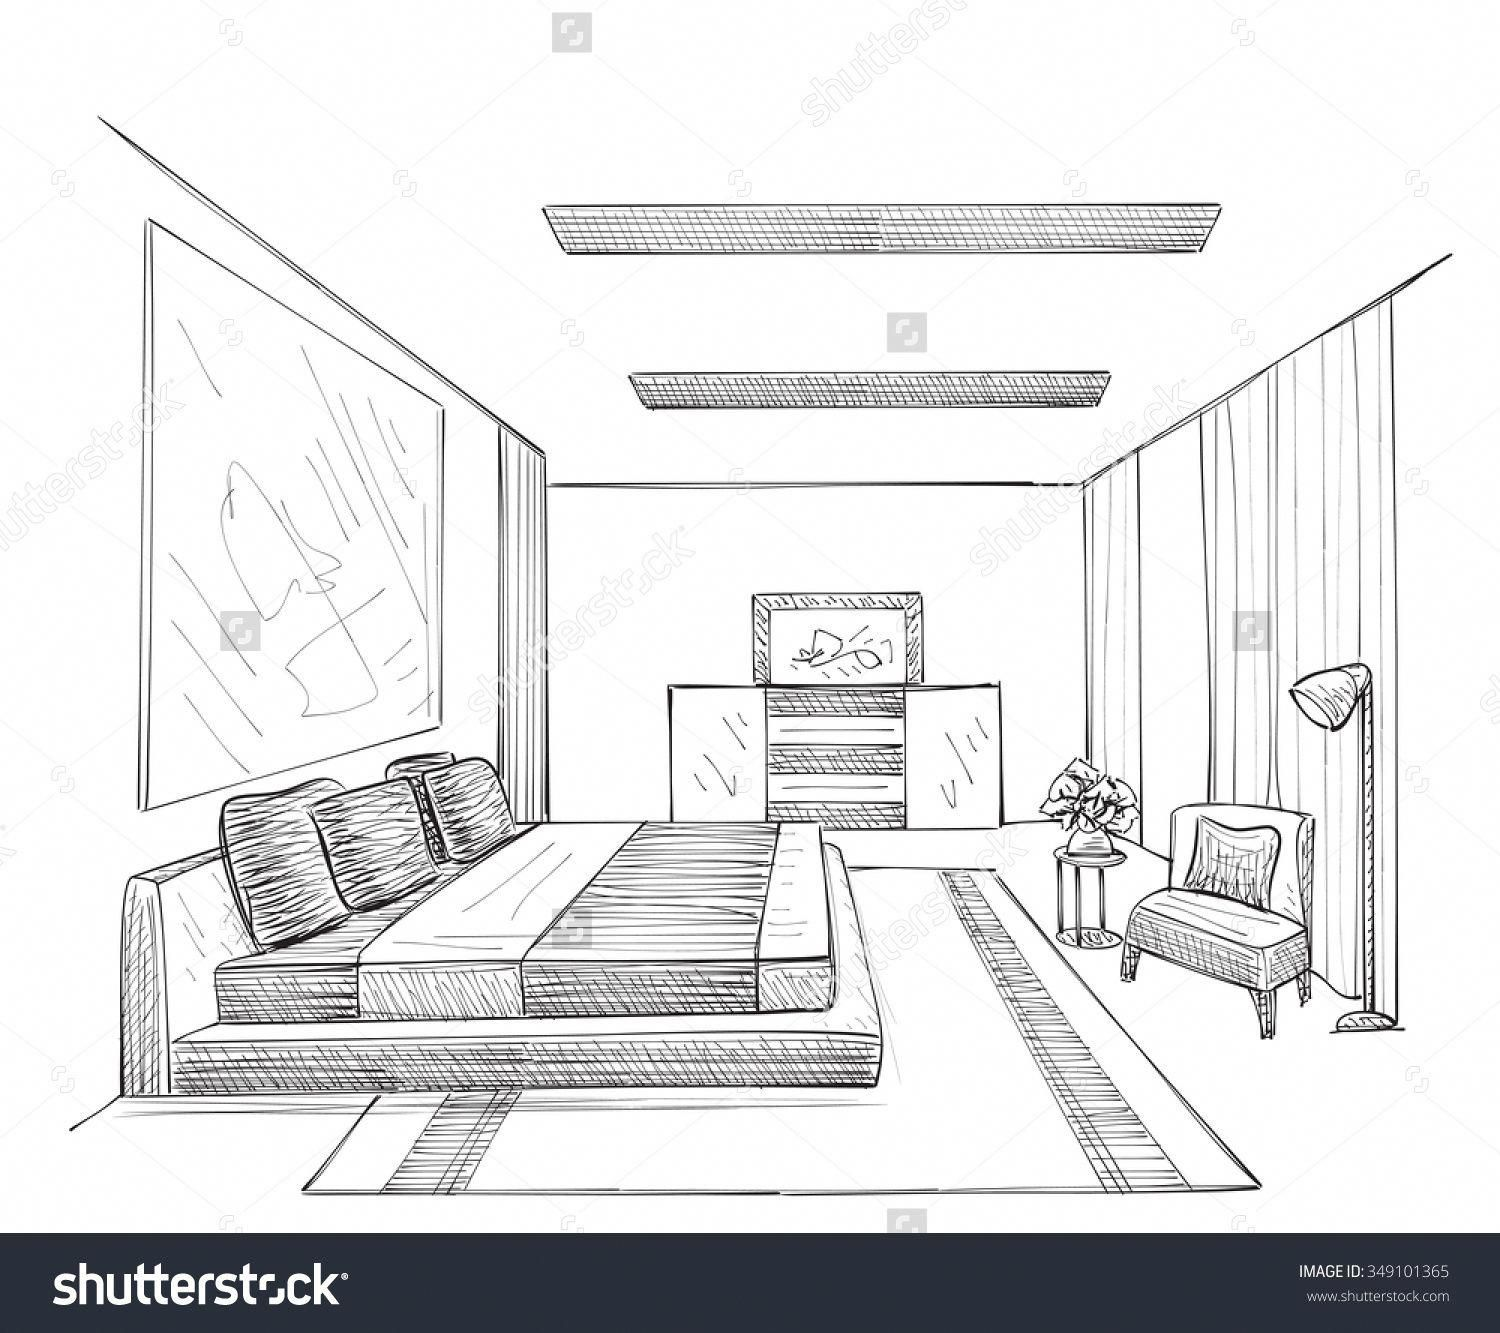 Besthomedecorationitems Room Perspective Drawing Interior Design Sketches Architecture Concept Drawings